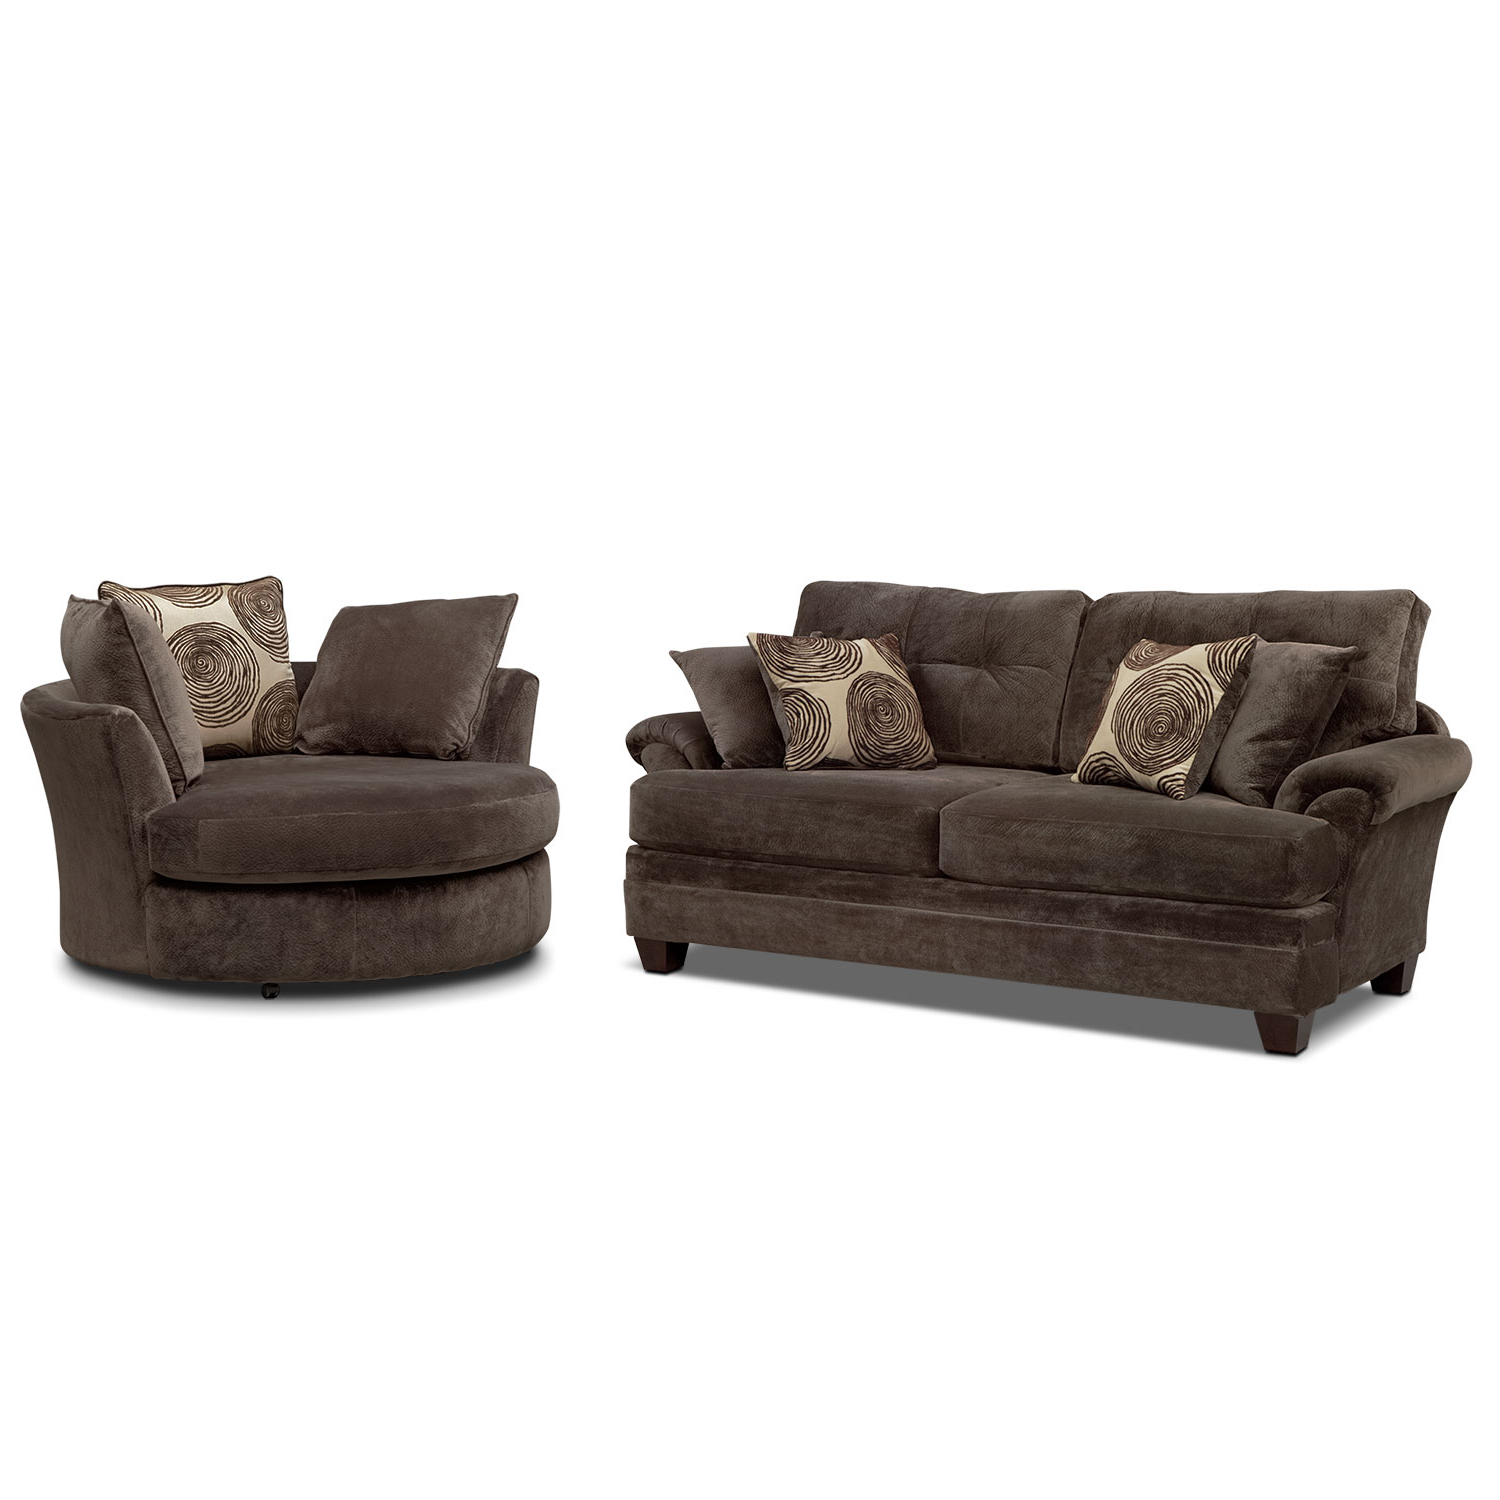 Cordelle Sofa And Swivel Chair Set (View 16 of 20)